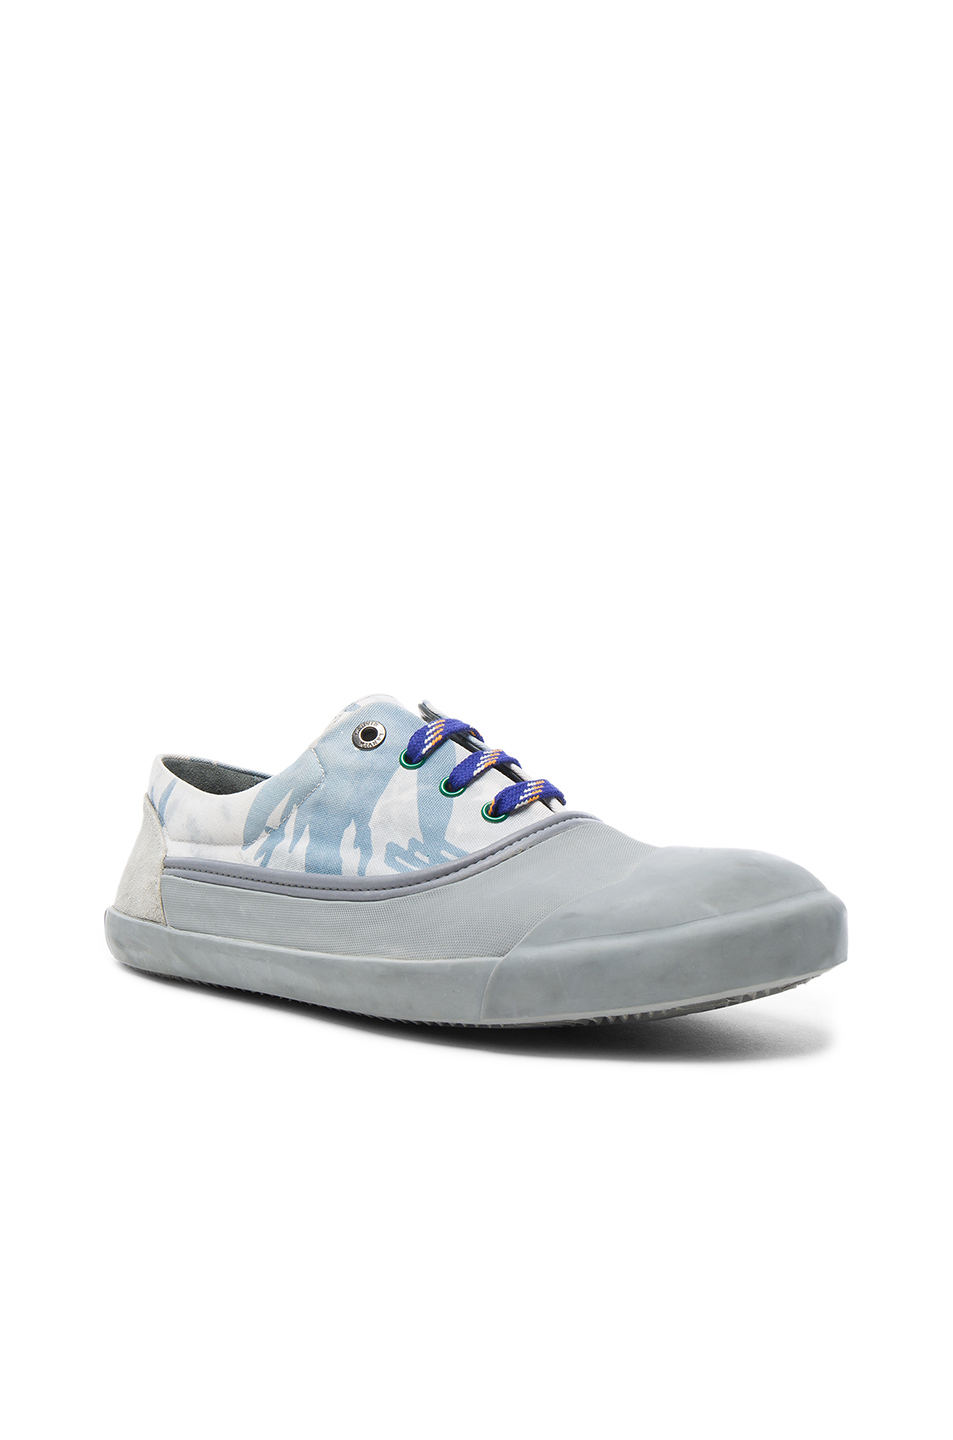 Lanvin Printed Canvas Low Top Sneakers in Blue,Gray,Abstract